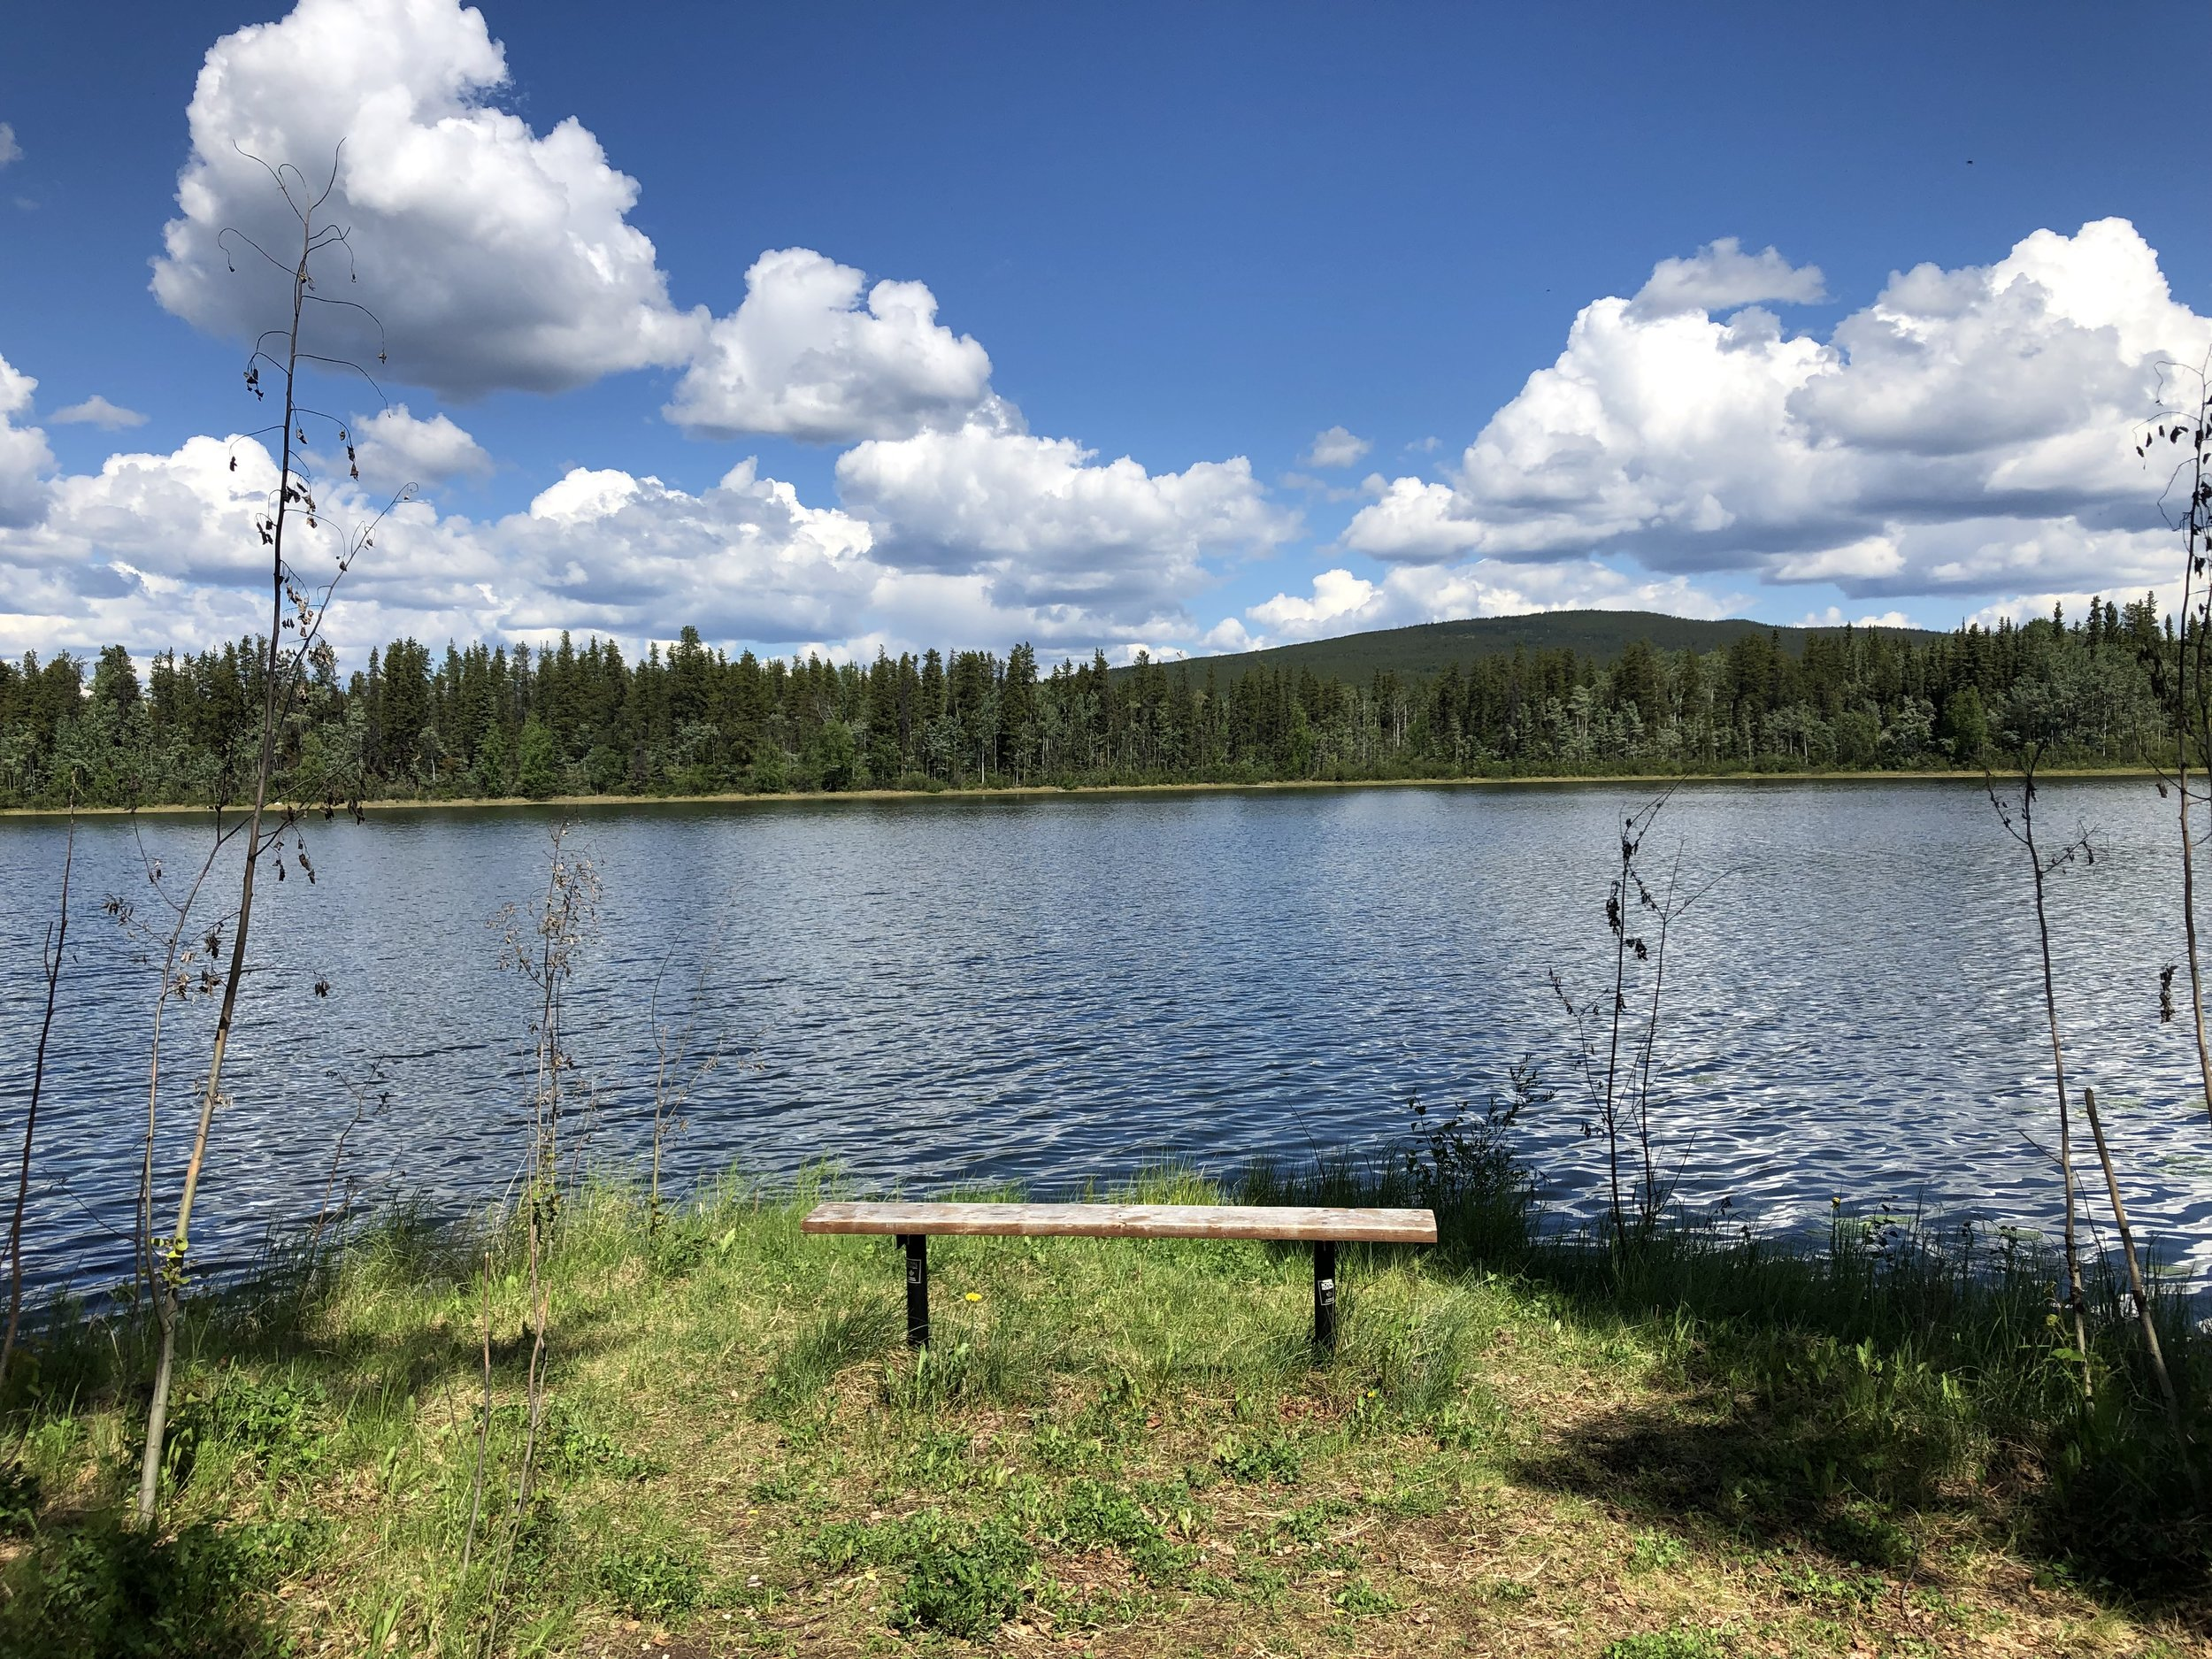 This looks like a good place to rest and contemplate intention settings. Wye Lake in Watson Lake, Yukon.